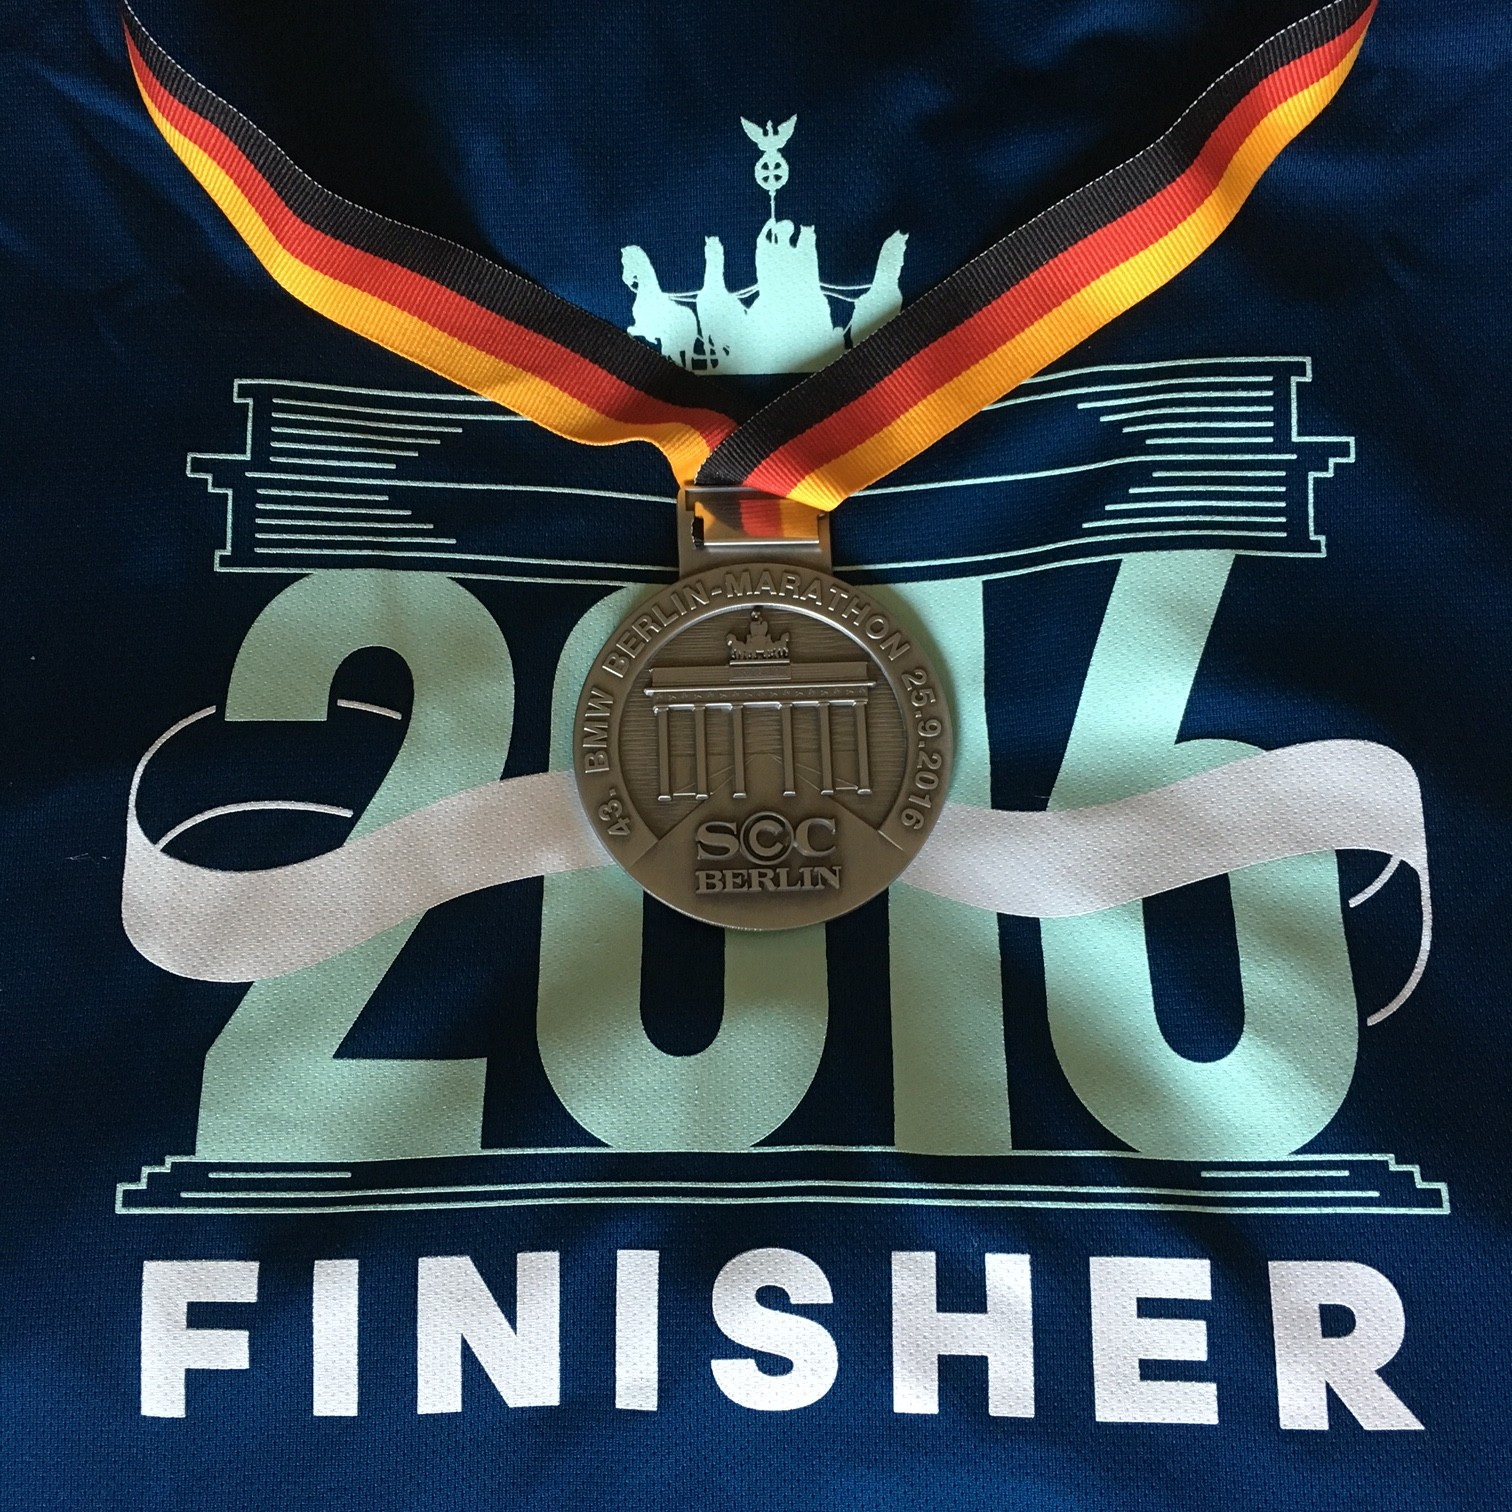 finisher-marathon-berlin